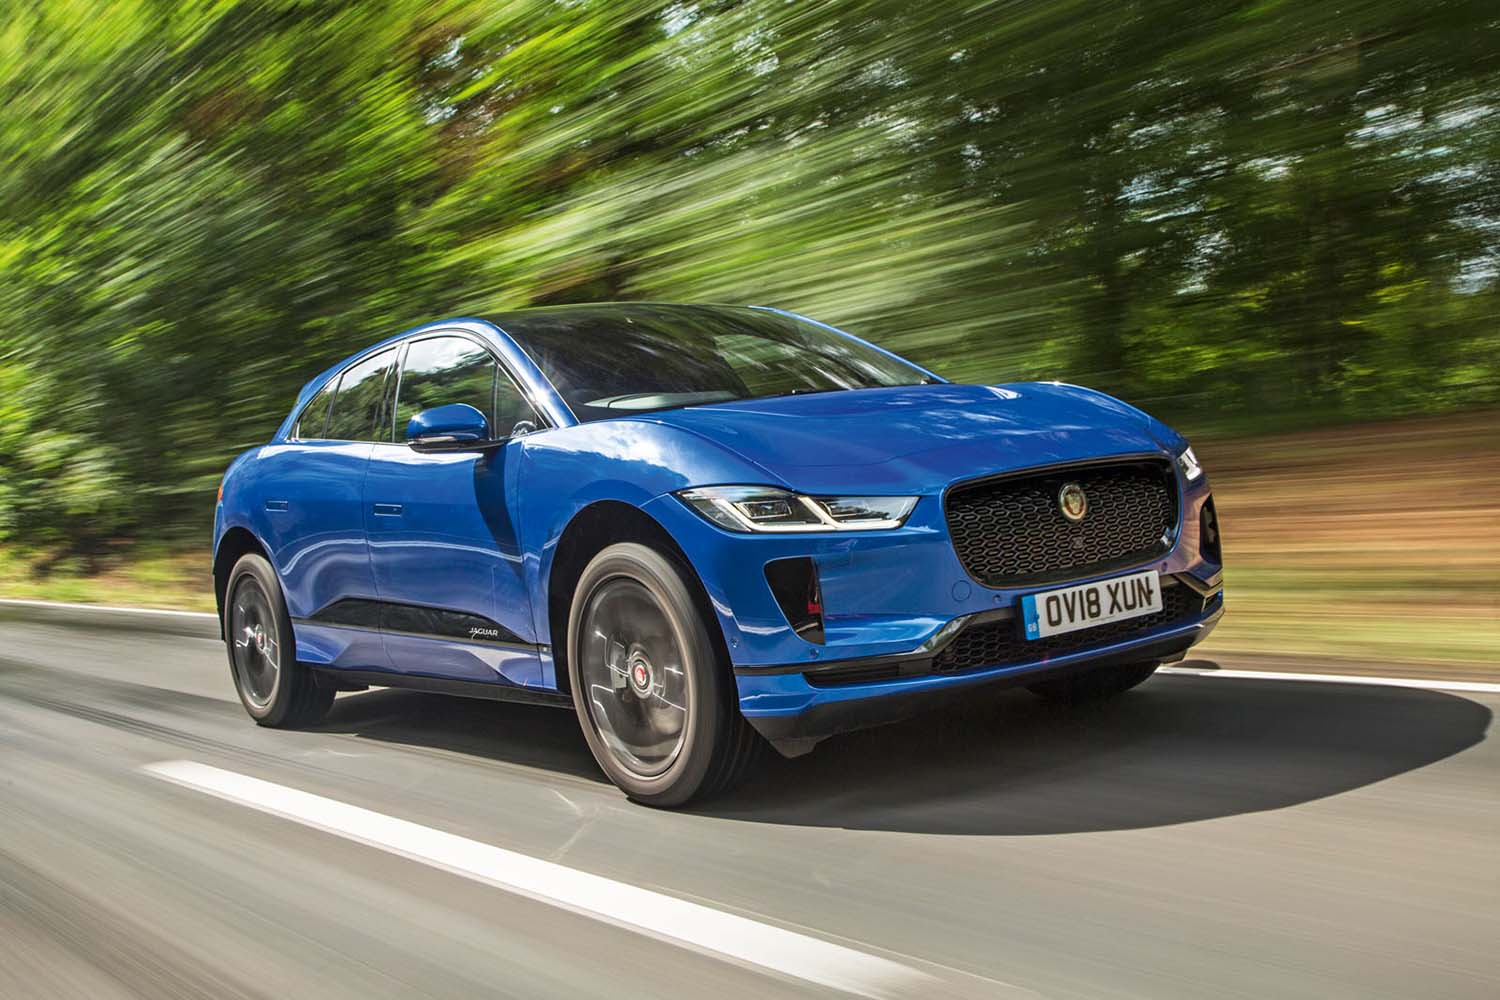 Top 10 Sustainable Luxury Cars for 2020: Jaguar I-PACE